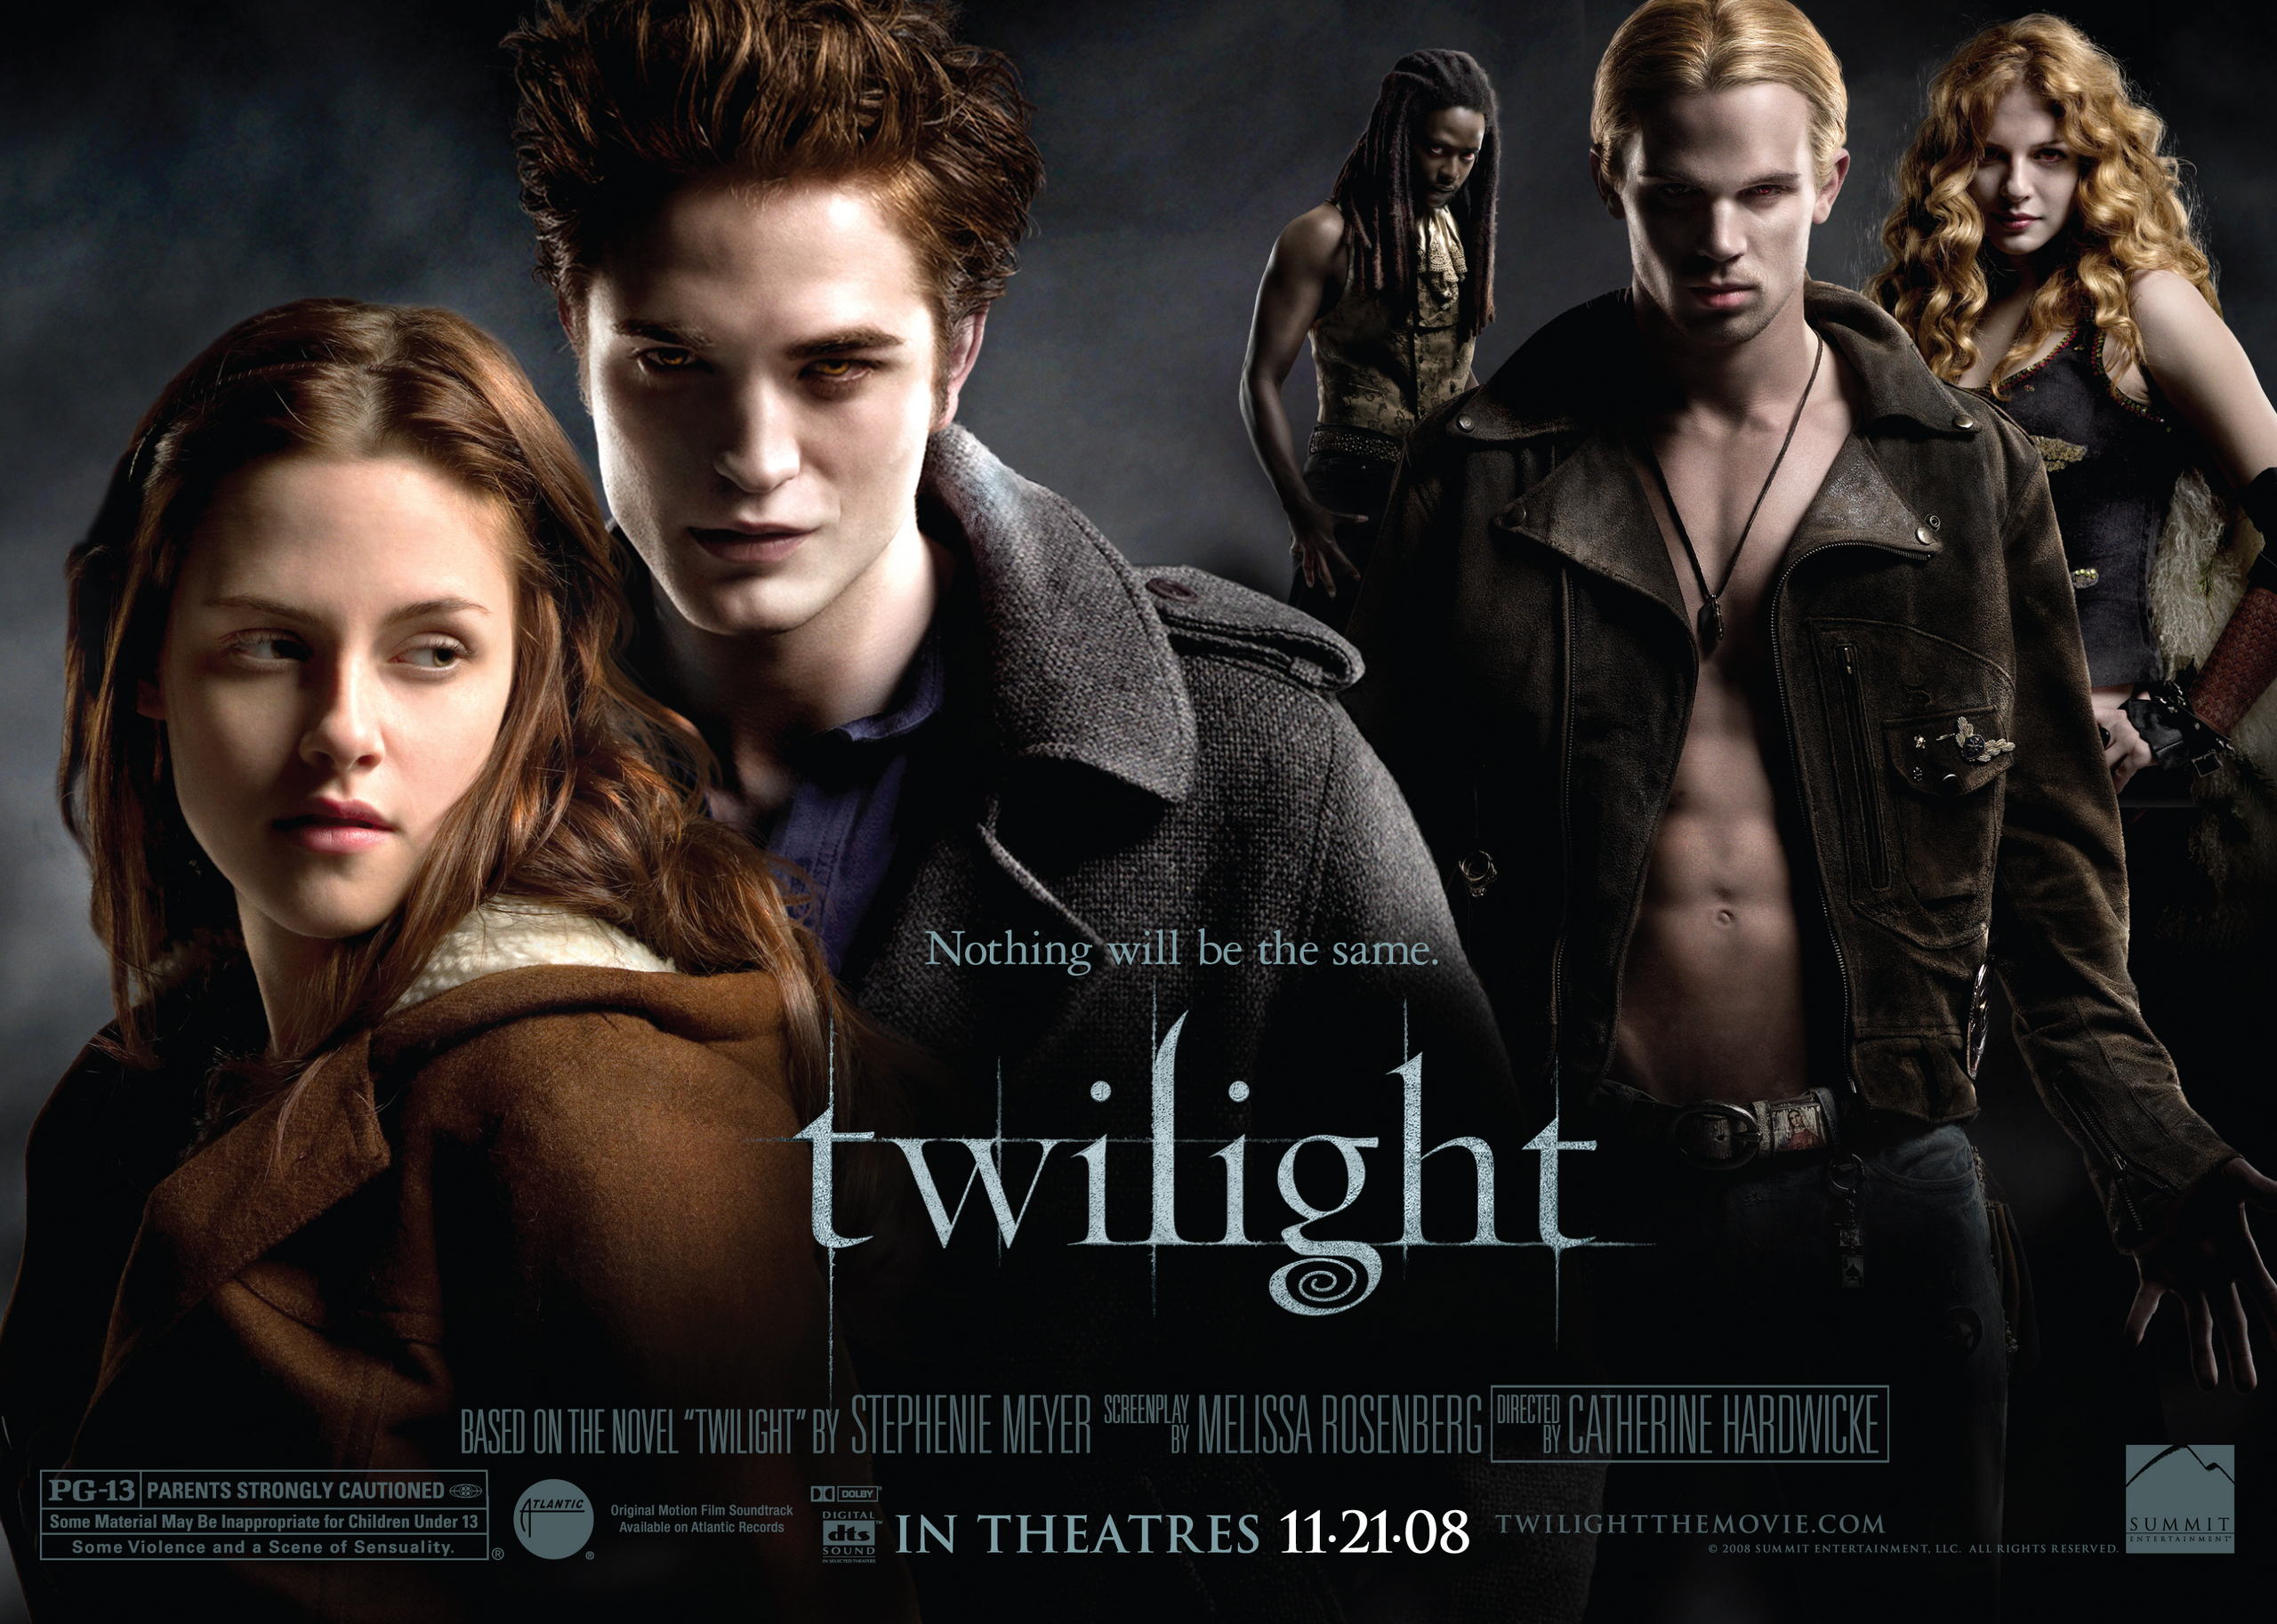 twilight series images twilight �bad vampire� banner art